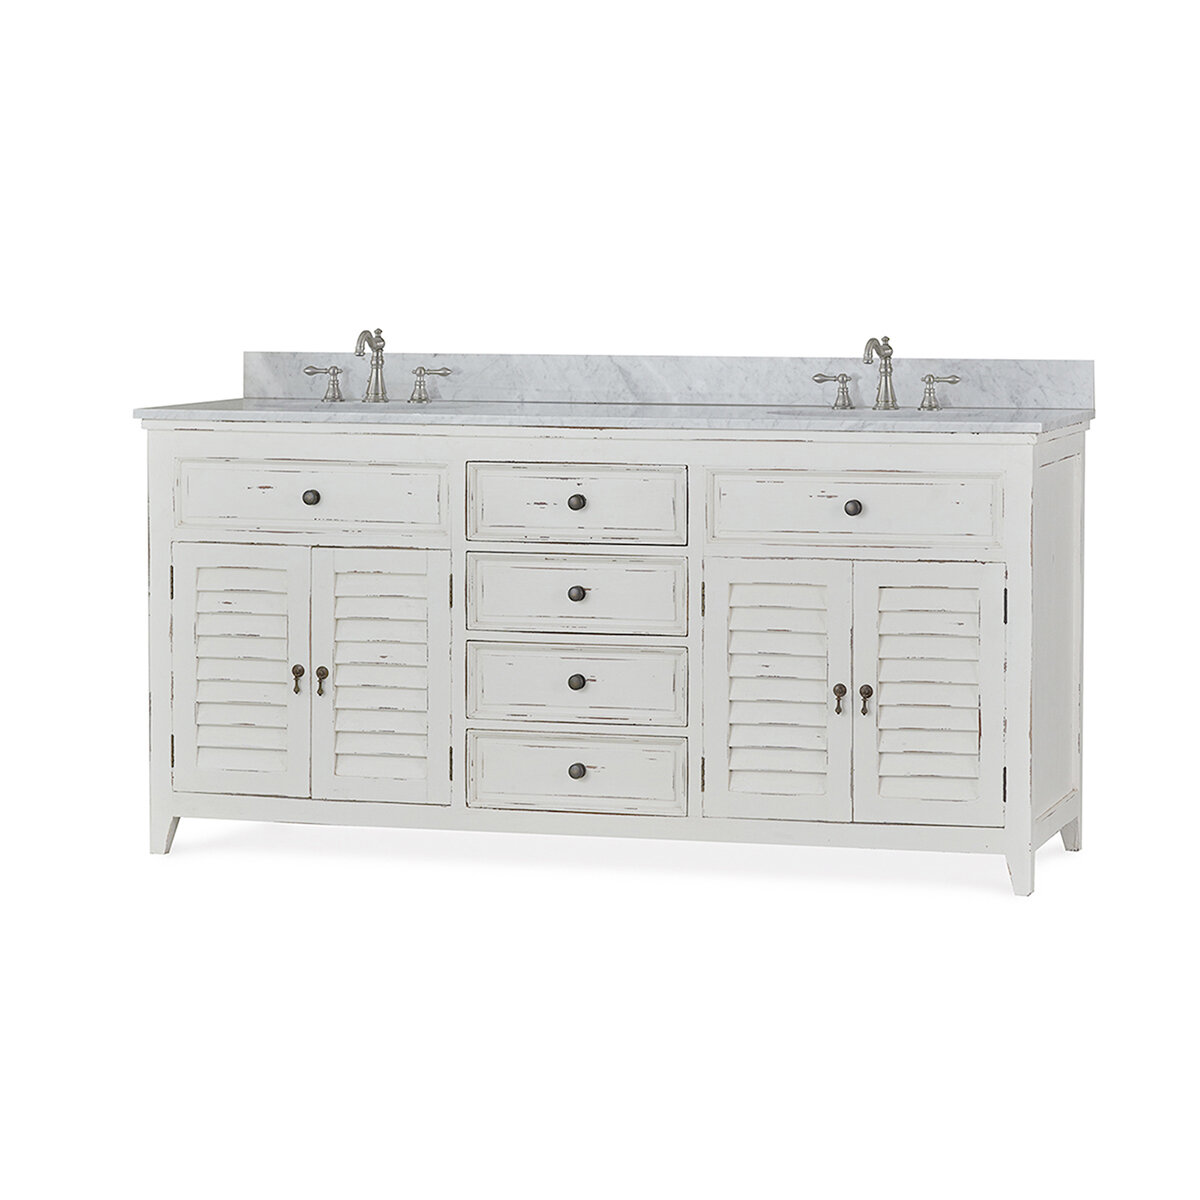 Sonoma White Distressed Shutter Double Vanity w/Marble Top & Sink